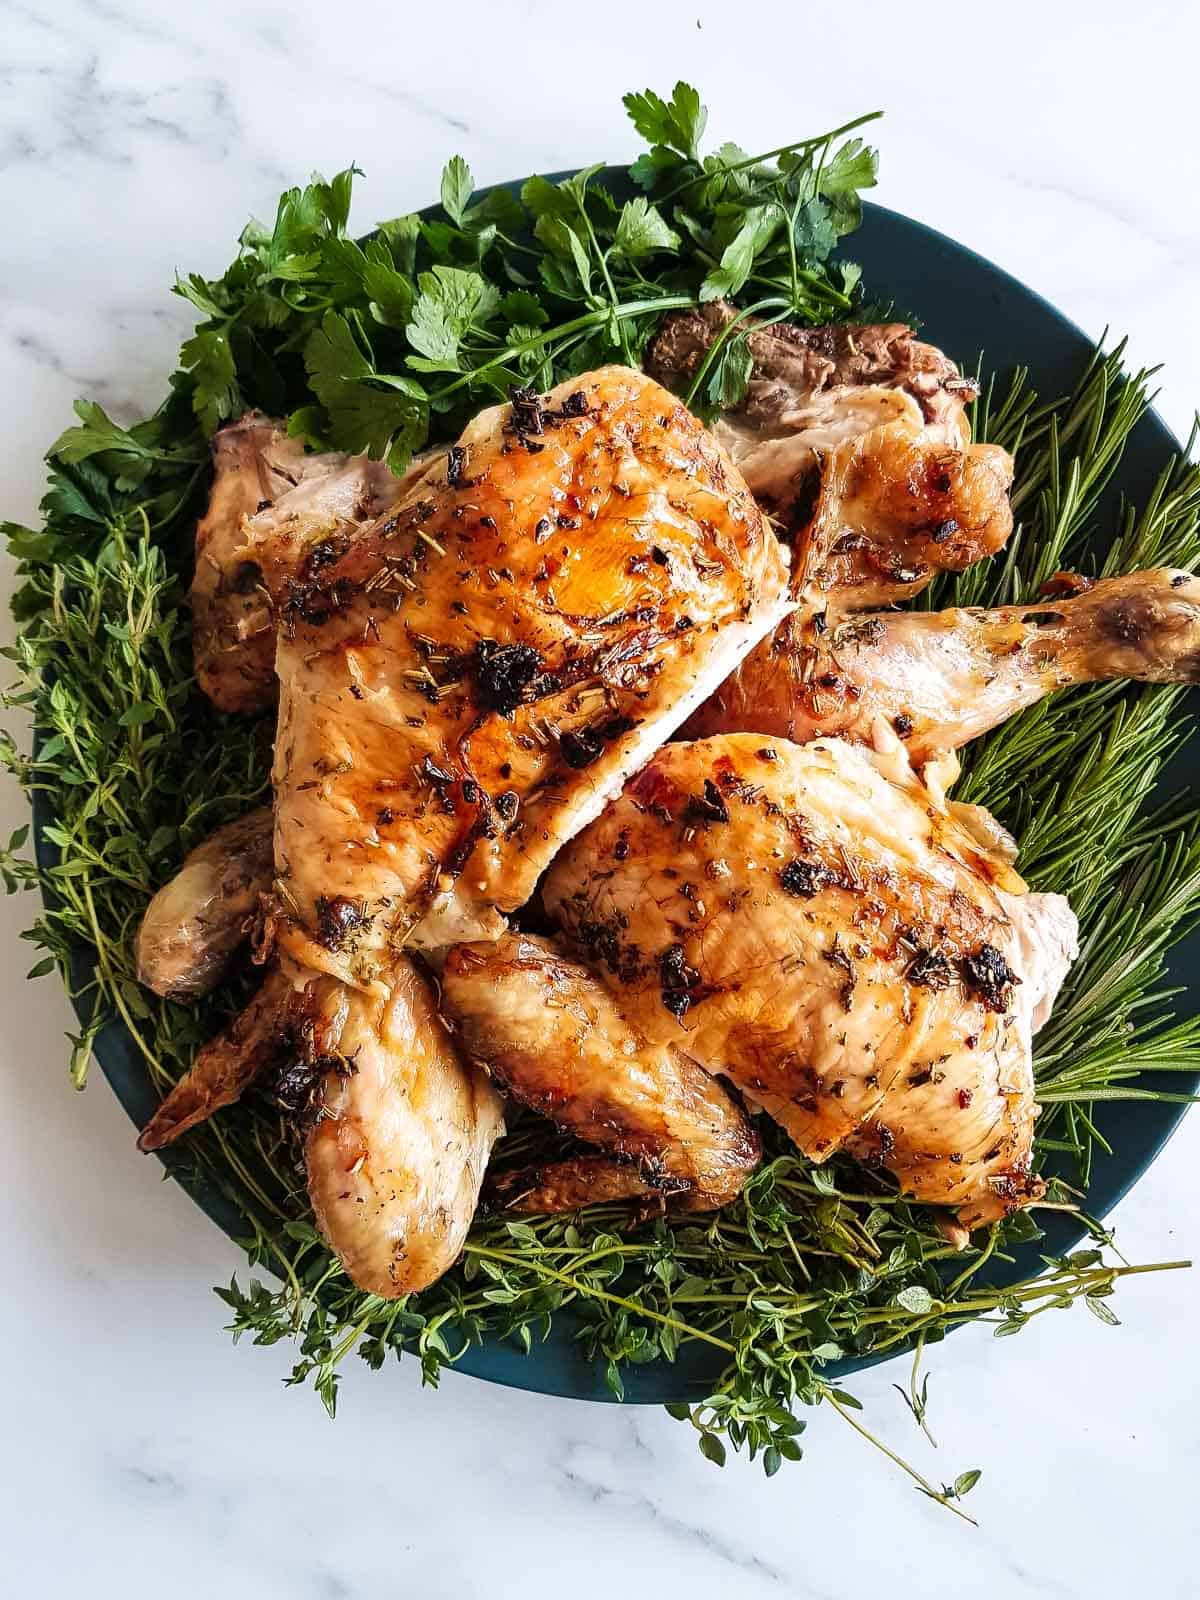 Carved roast chicken on a bed of thyme, rosemary and parsley.